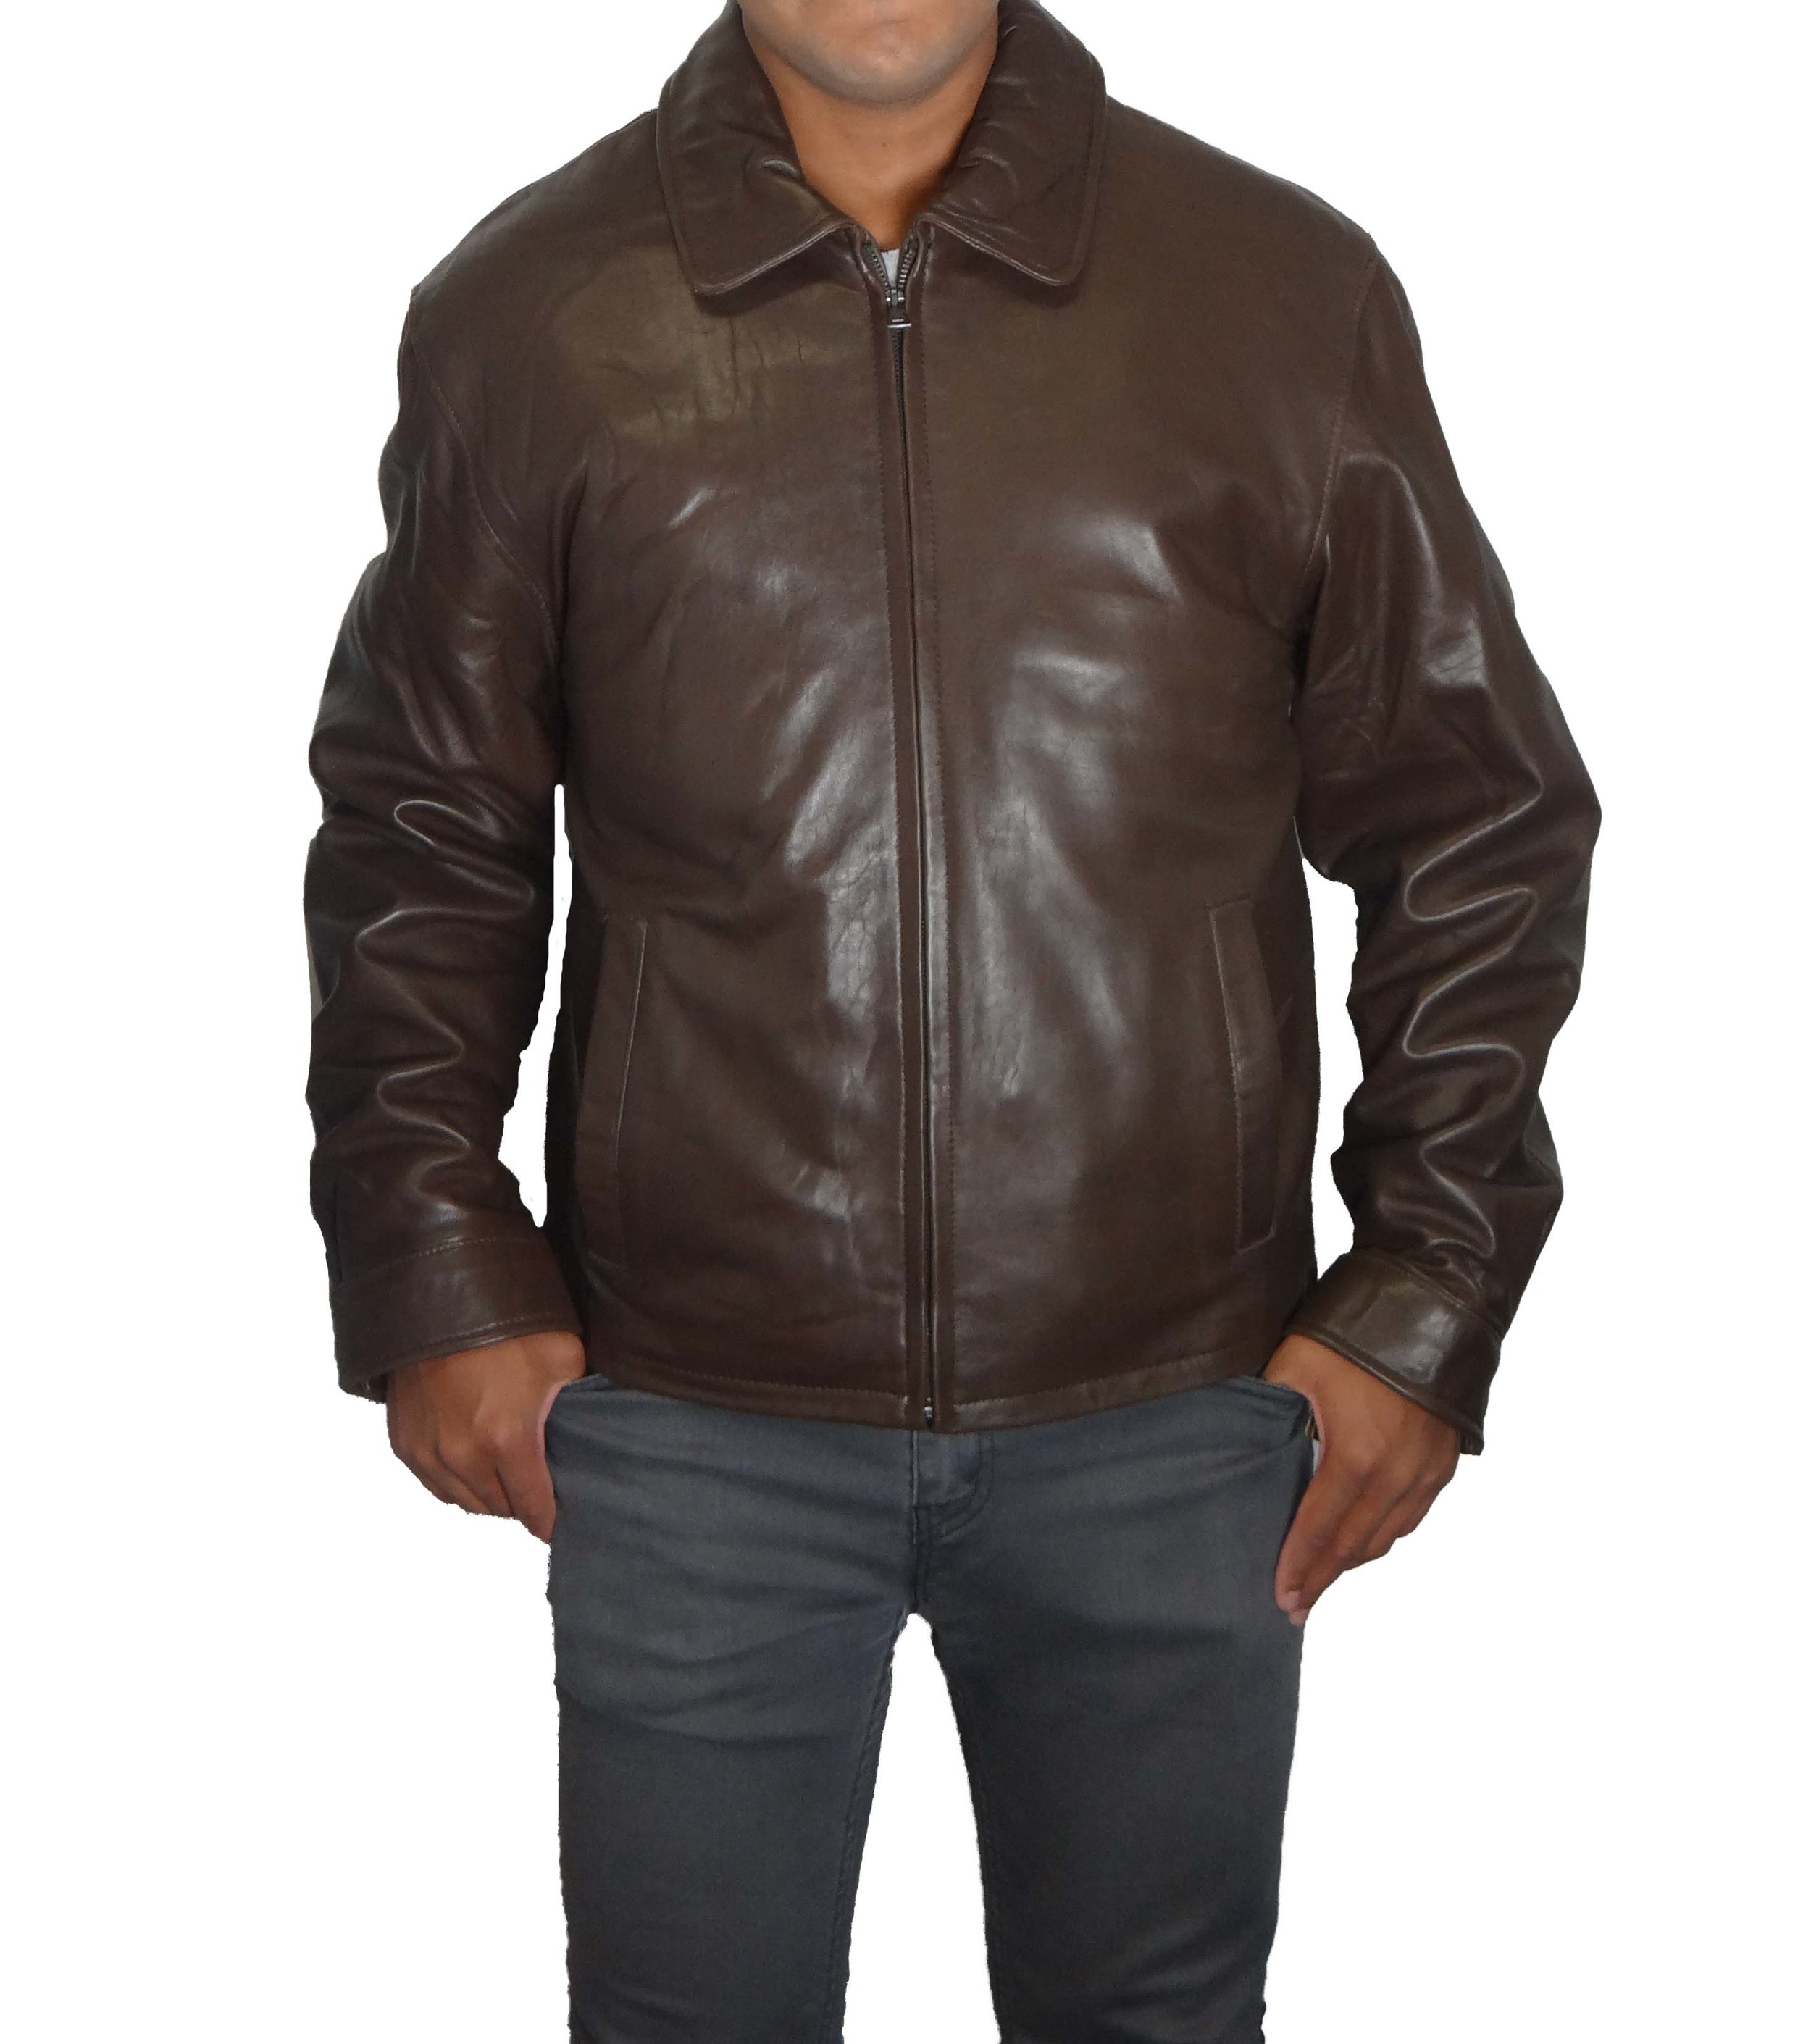 85d298b37 Knoles & Carter Men's Zip Front Leather Jacket — Zooloo LeatherZooloo  Leather